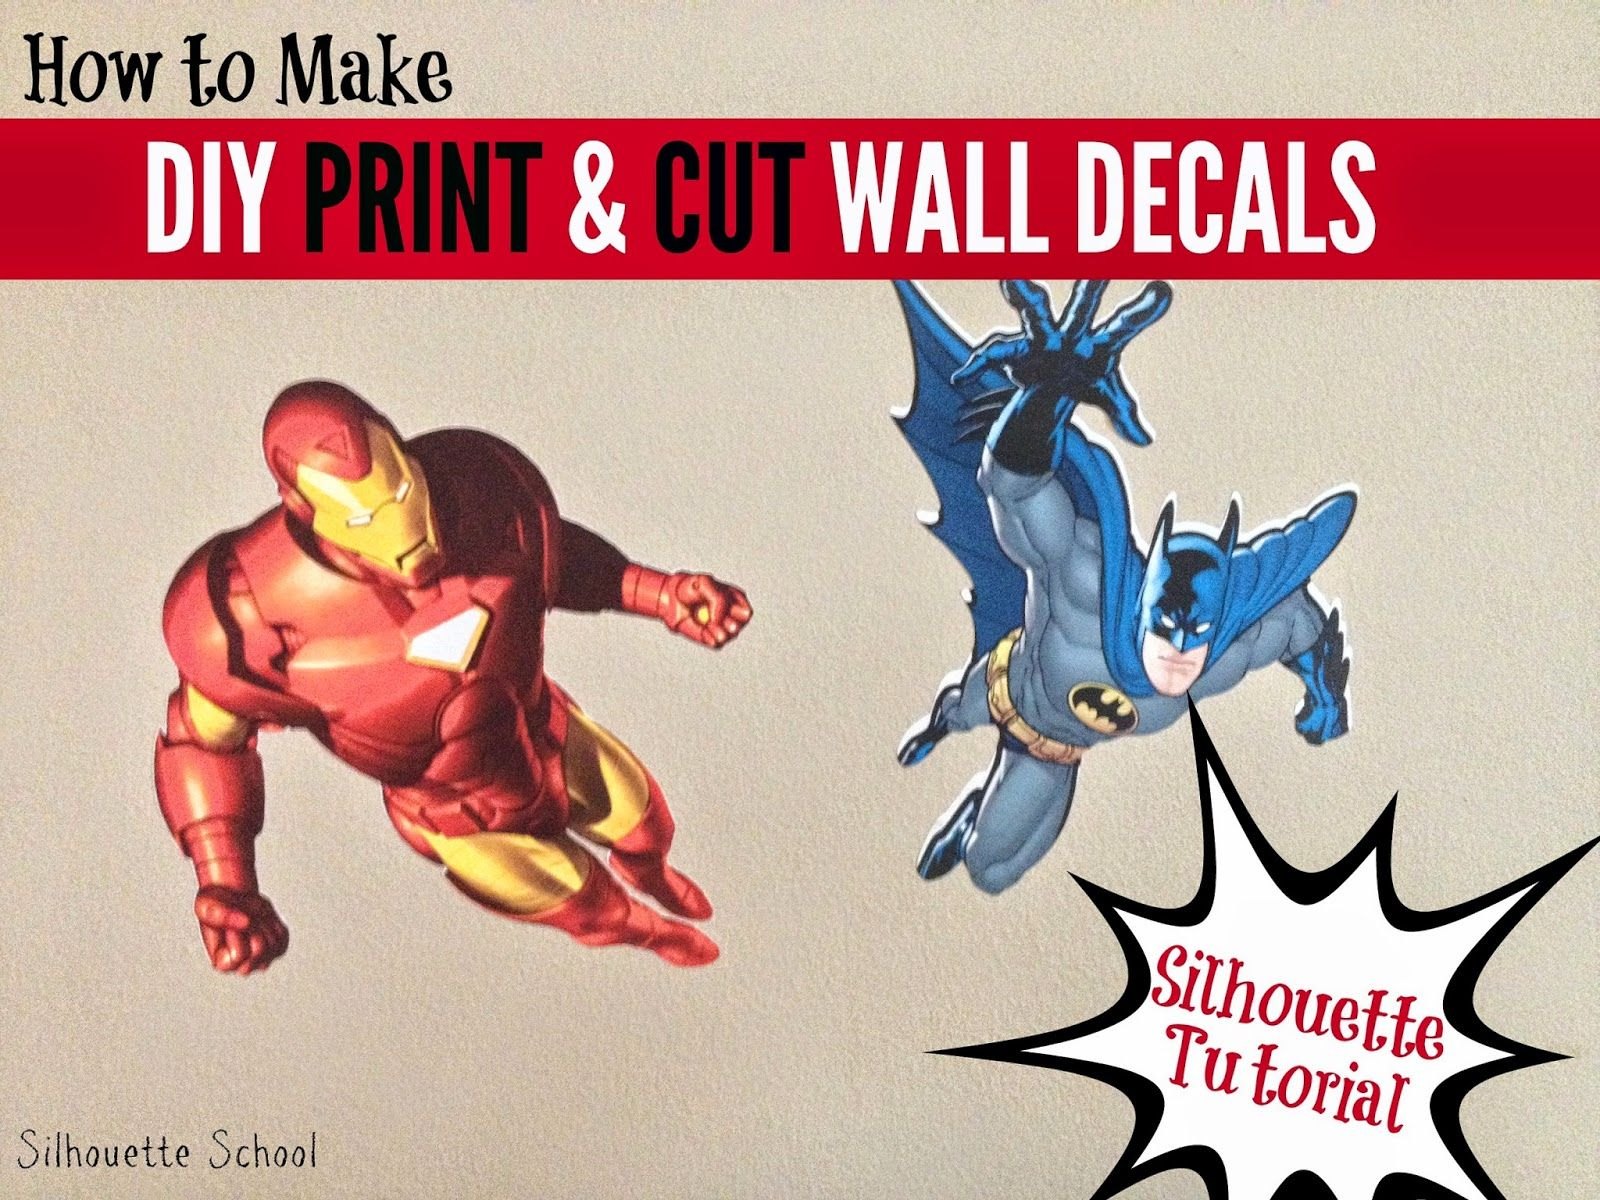 Silhouette School DIY Print And Cut Wall Decals Using Square - How to make vinyl wall decals with silhouette cameo